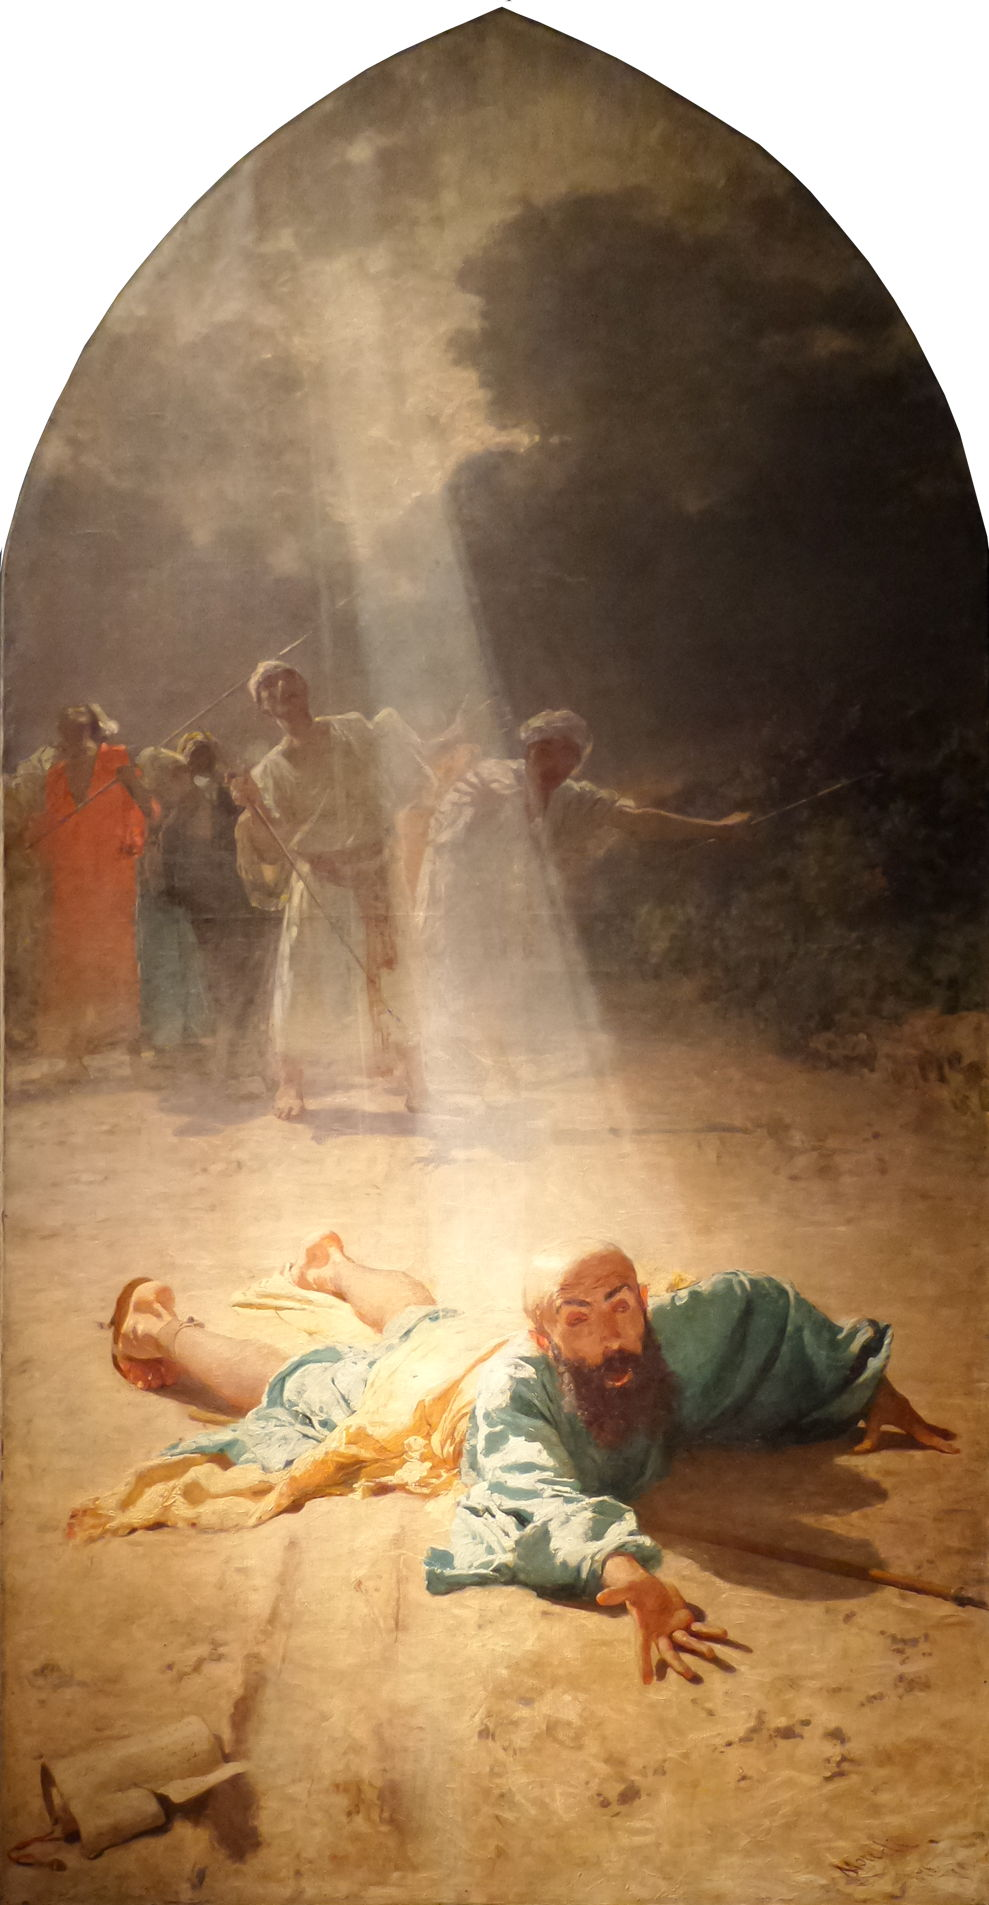 Acts 9:1-19 - Saul's Conversion - Meanwhile, Saul - Bible ...